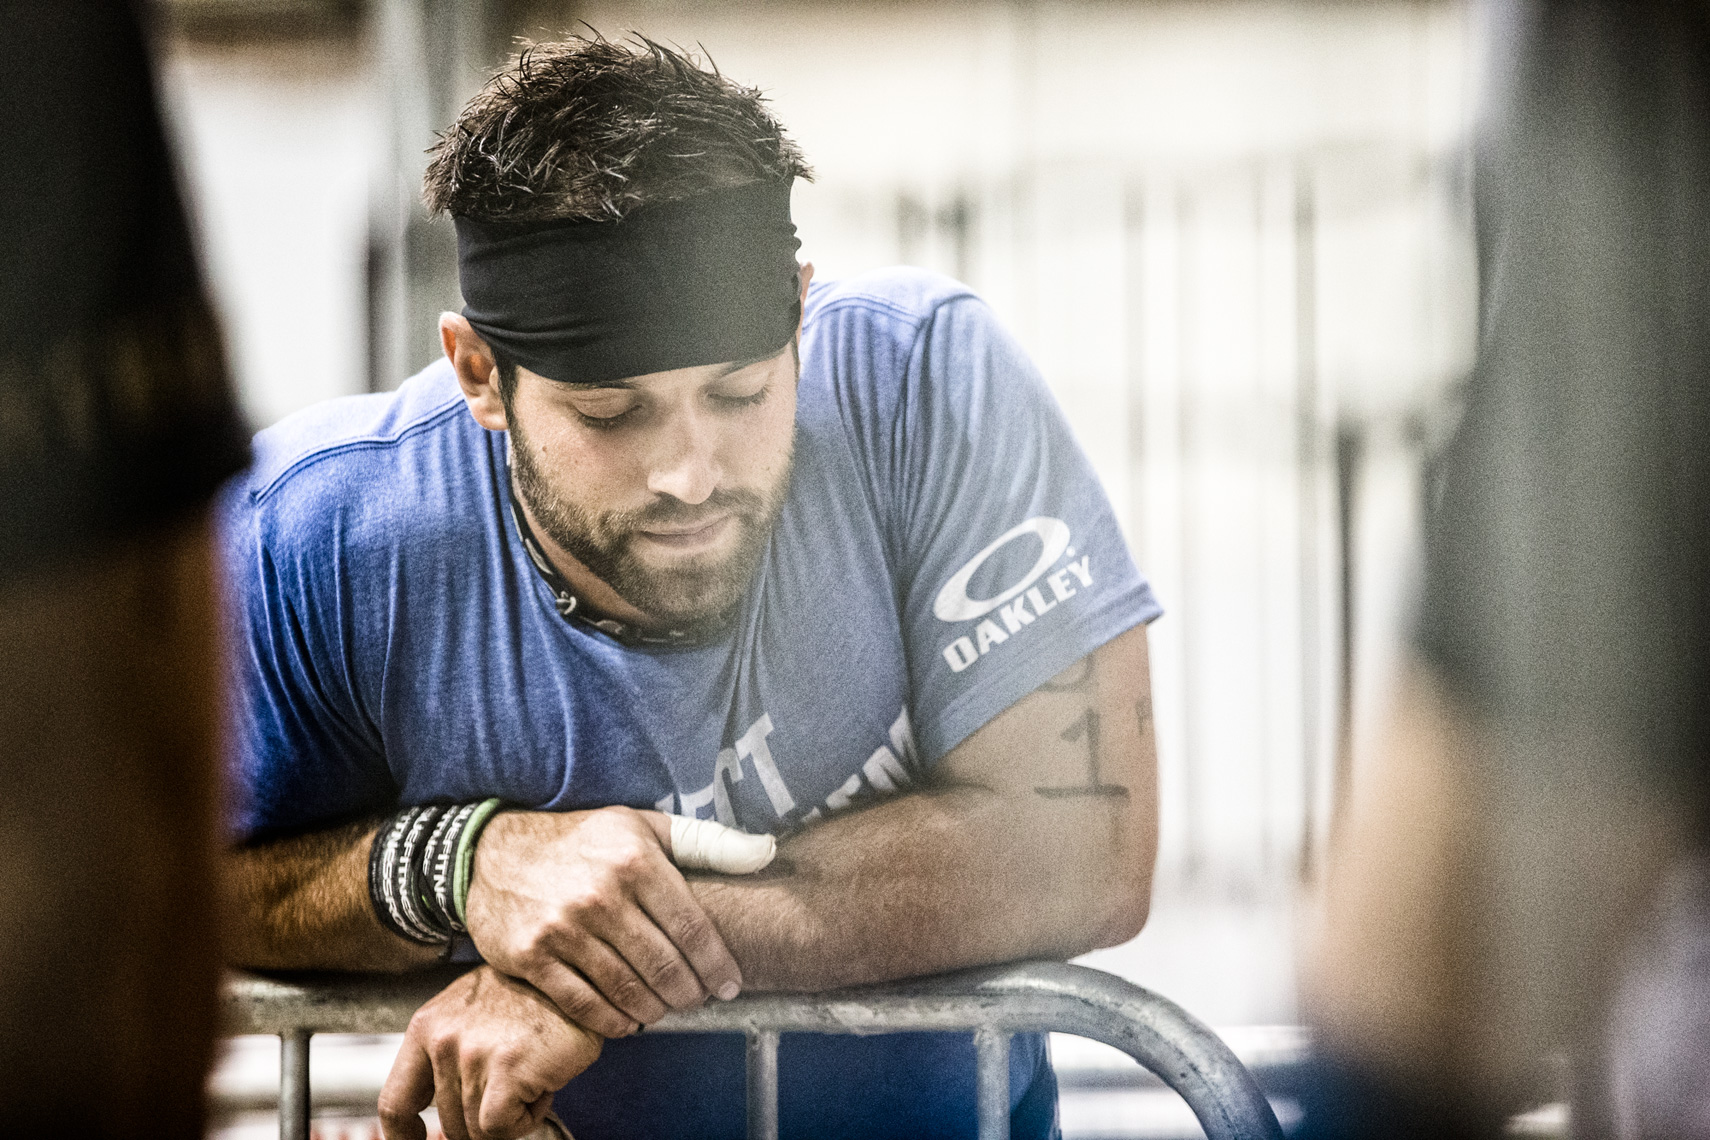 Los Angeles Sports Photography, Michael Brian, athlete, Rich Froning, Fittest Man on Earth, Reebok Crossfit Games Champion, Rogue, prayer, meditation, pre WOD quiet moment